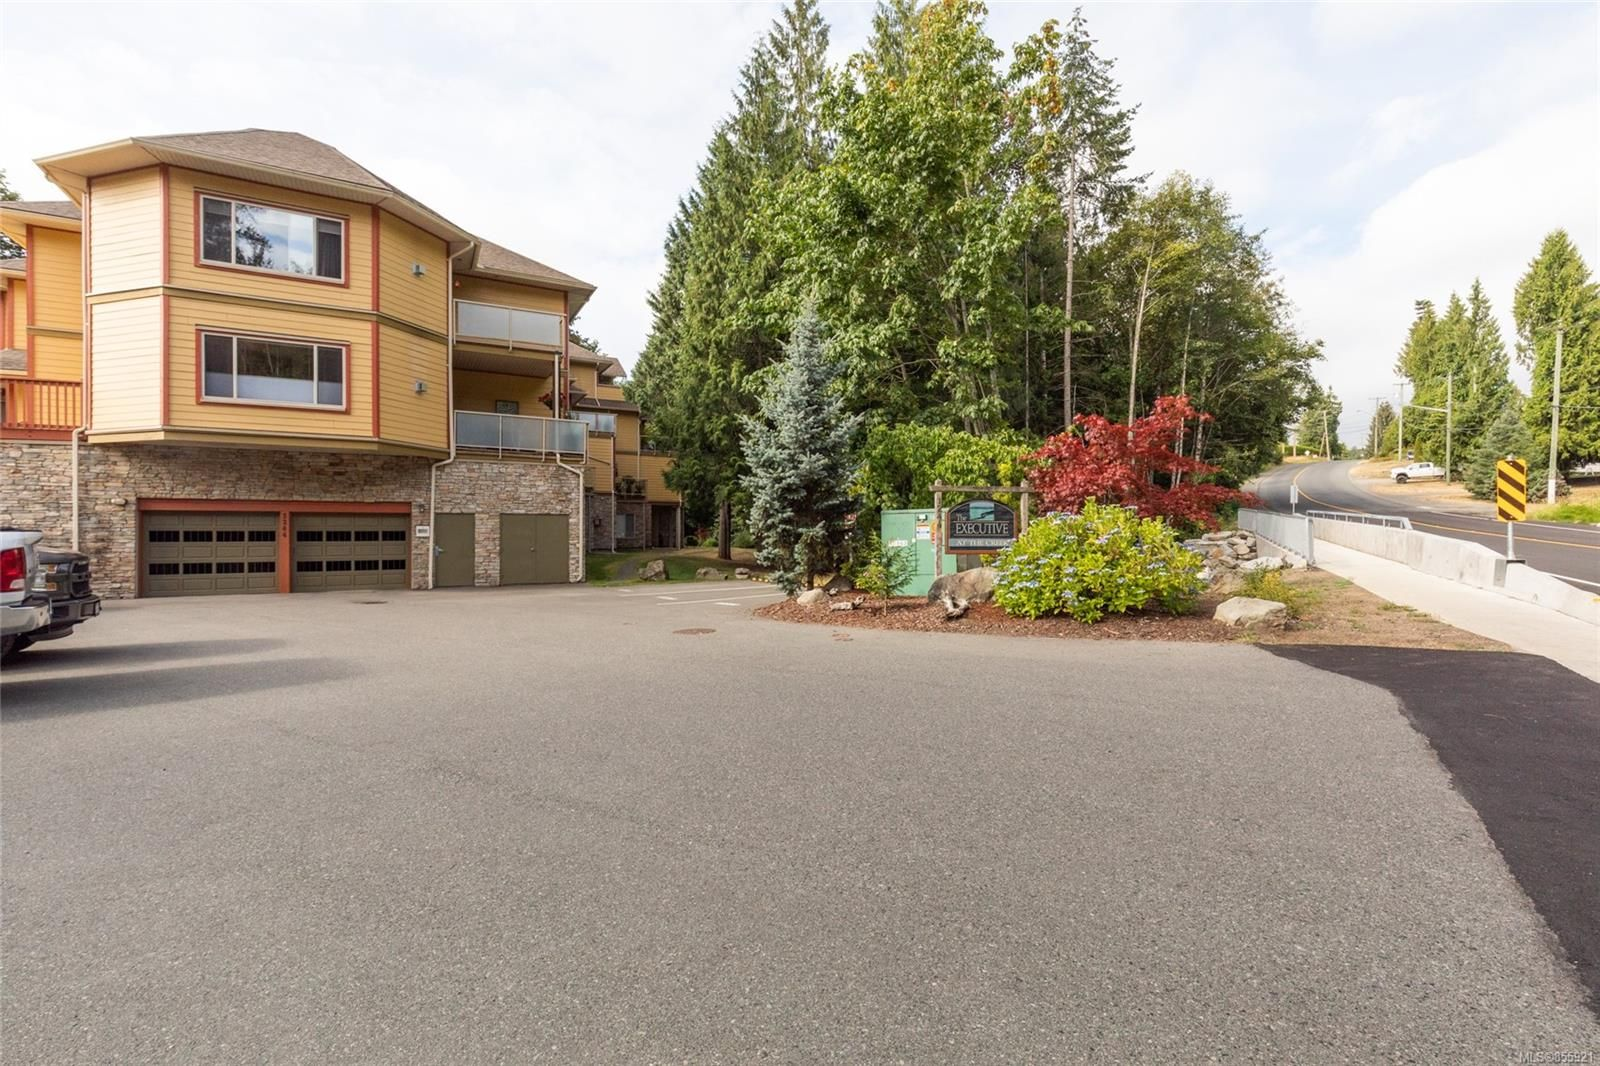 Photo 22: Photos: 206 1244 4TH Ave in : Du Ladysmith Row/Townhouse for sale (Duncan)  : MLS®# 855921